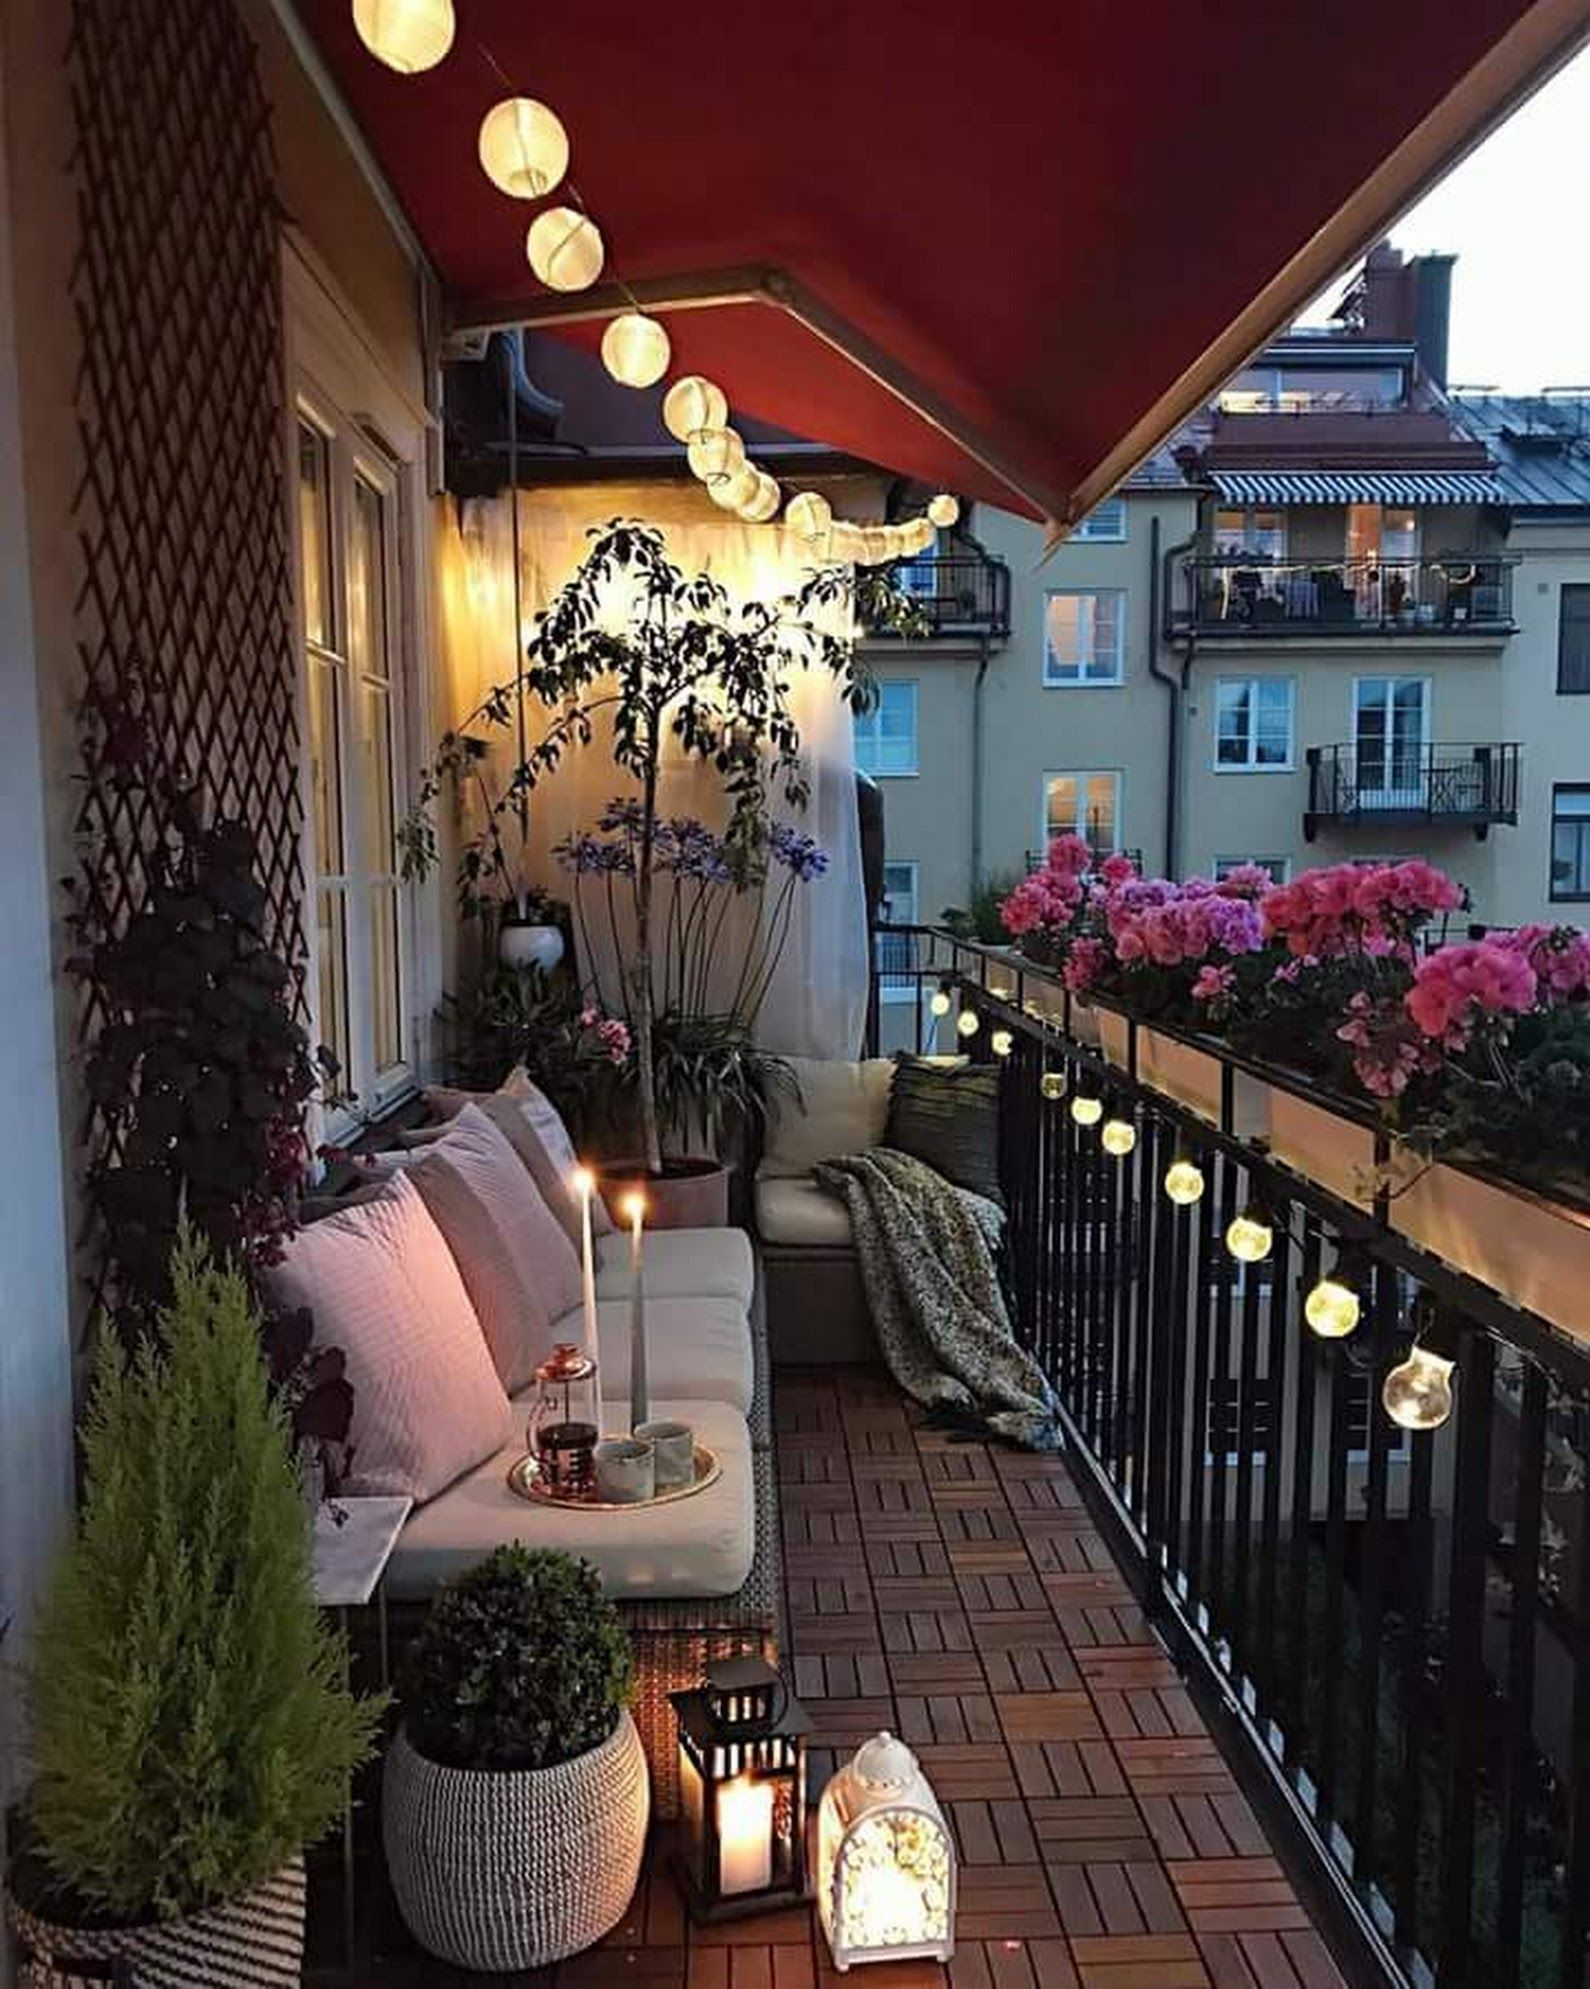 The Best Decorated Small Outdoor Balconies On Pinterest Balkon